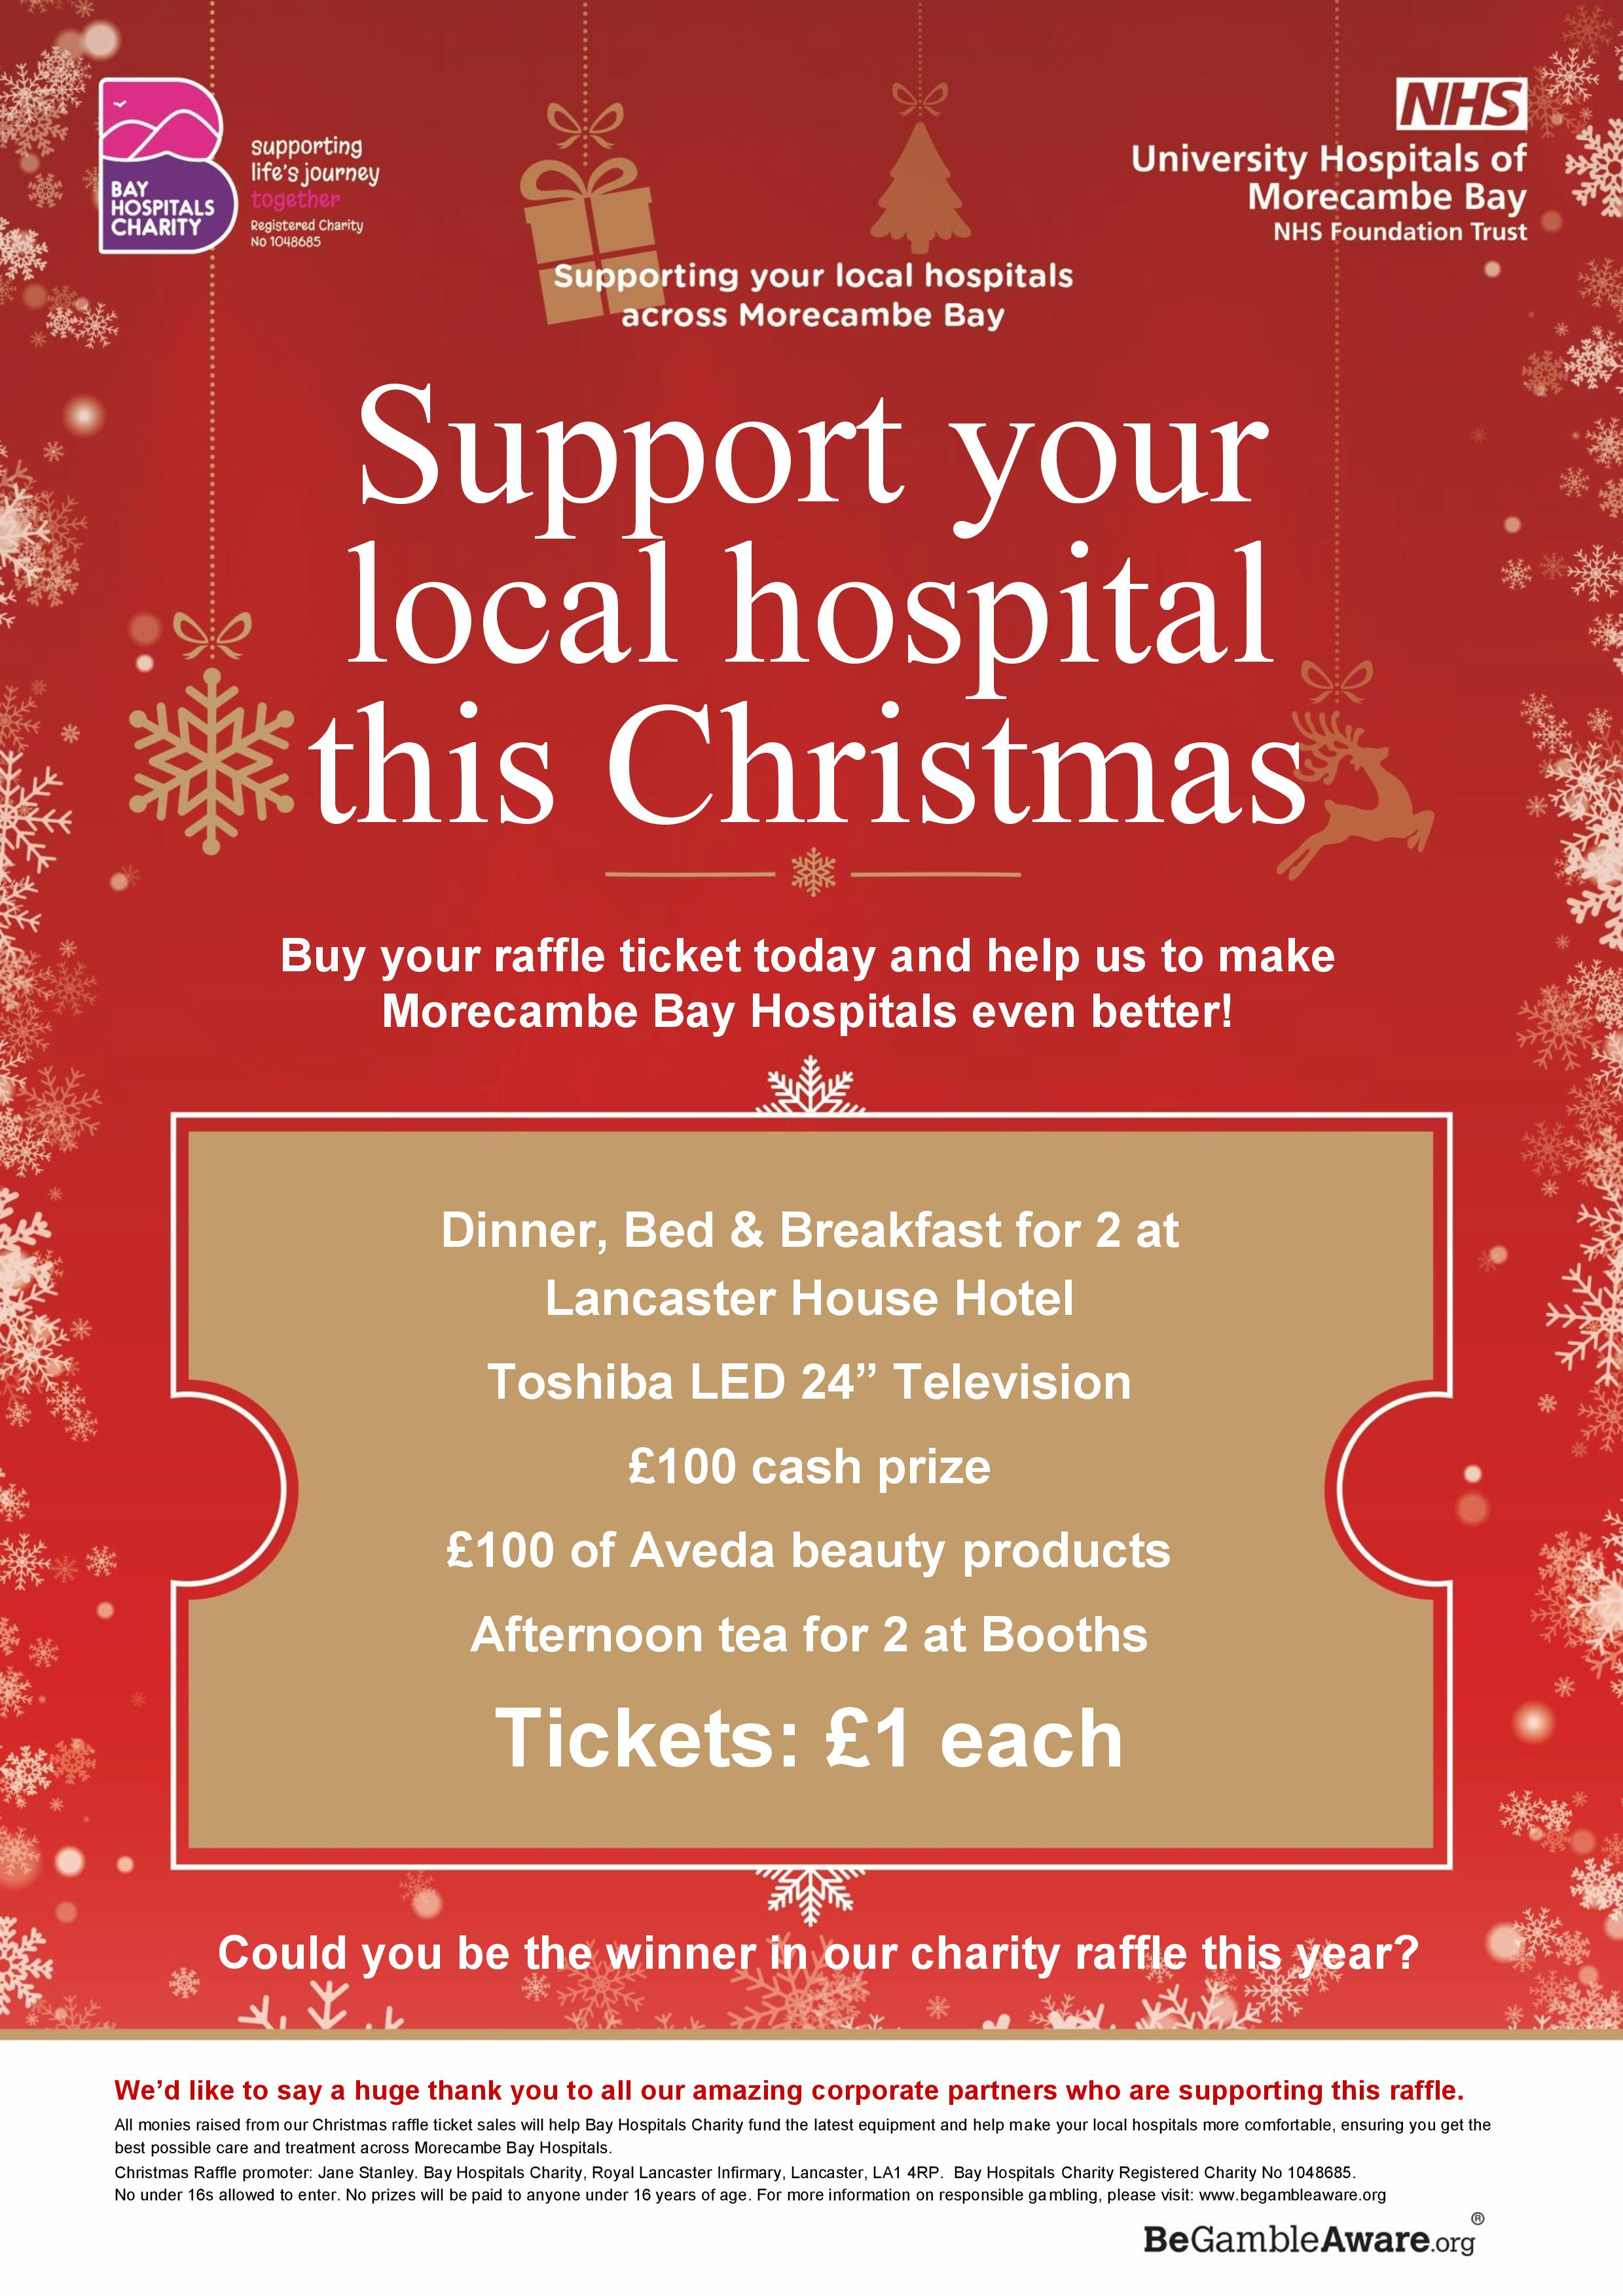 Uhmbt Raffle Ticket Poster A4 Page 001 Bay Hospitals Charity